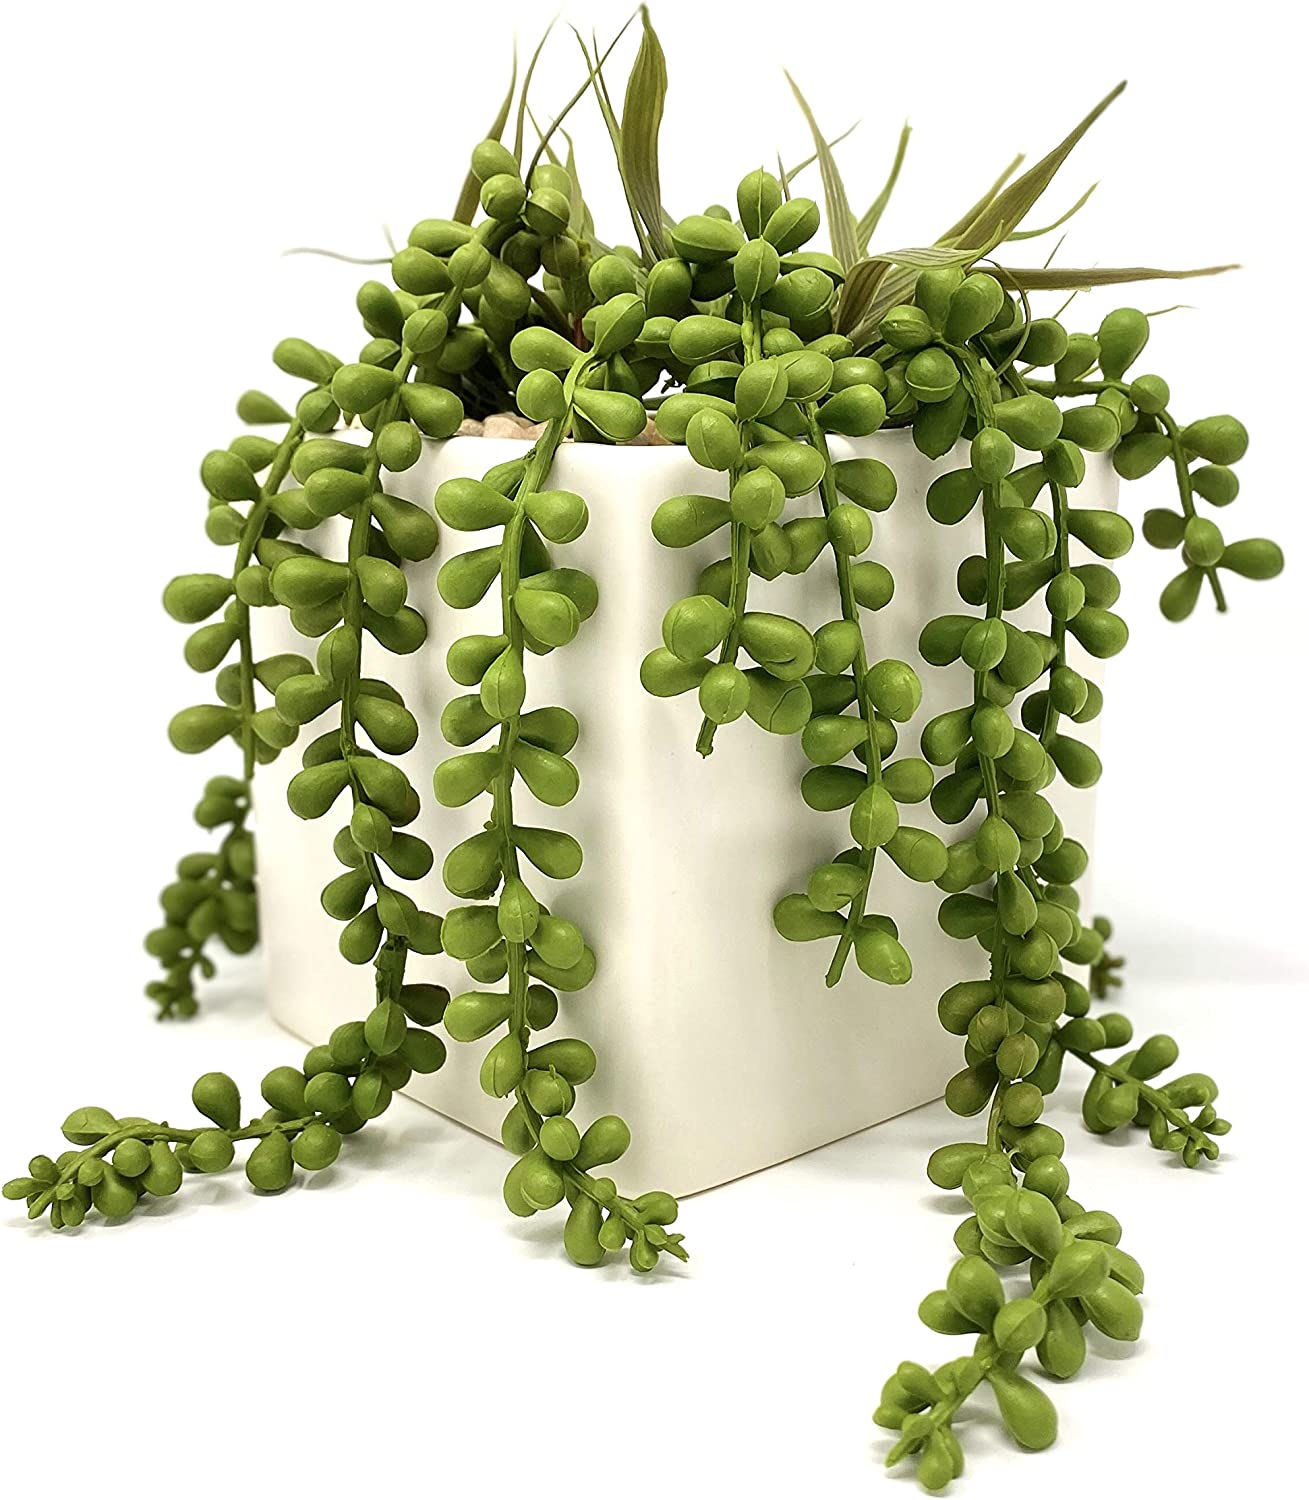 Werandah Artificial String of Pearls in Square Pot | Faux Greenery | Decor for Table top, Bookshelf, Dorm Room, Home and Office |